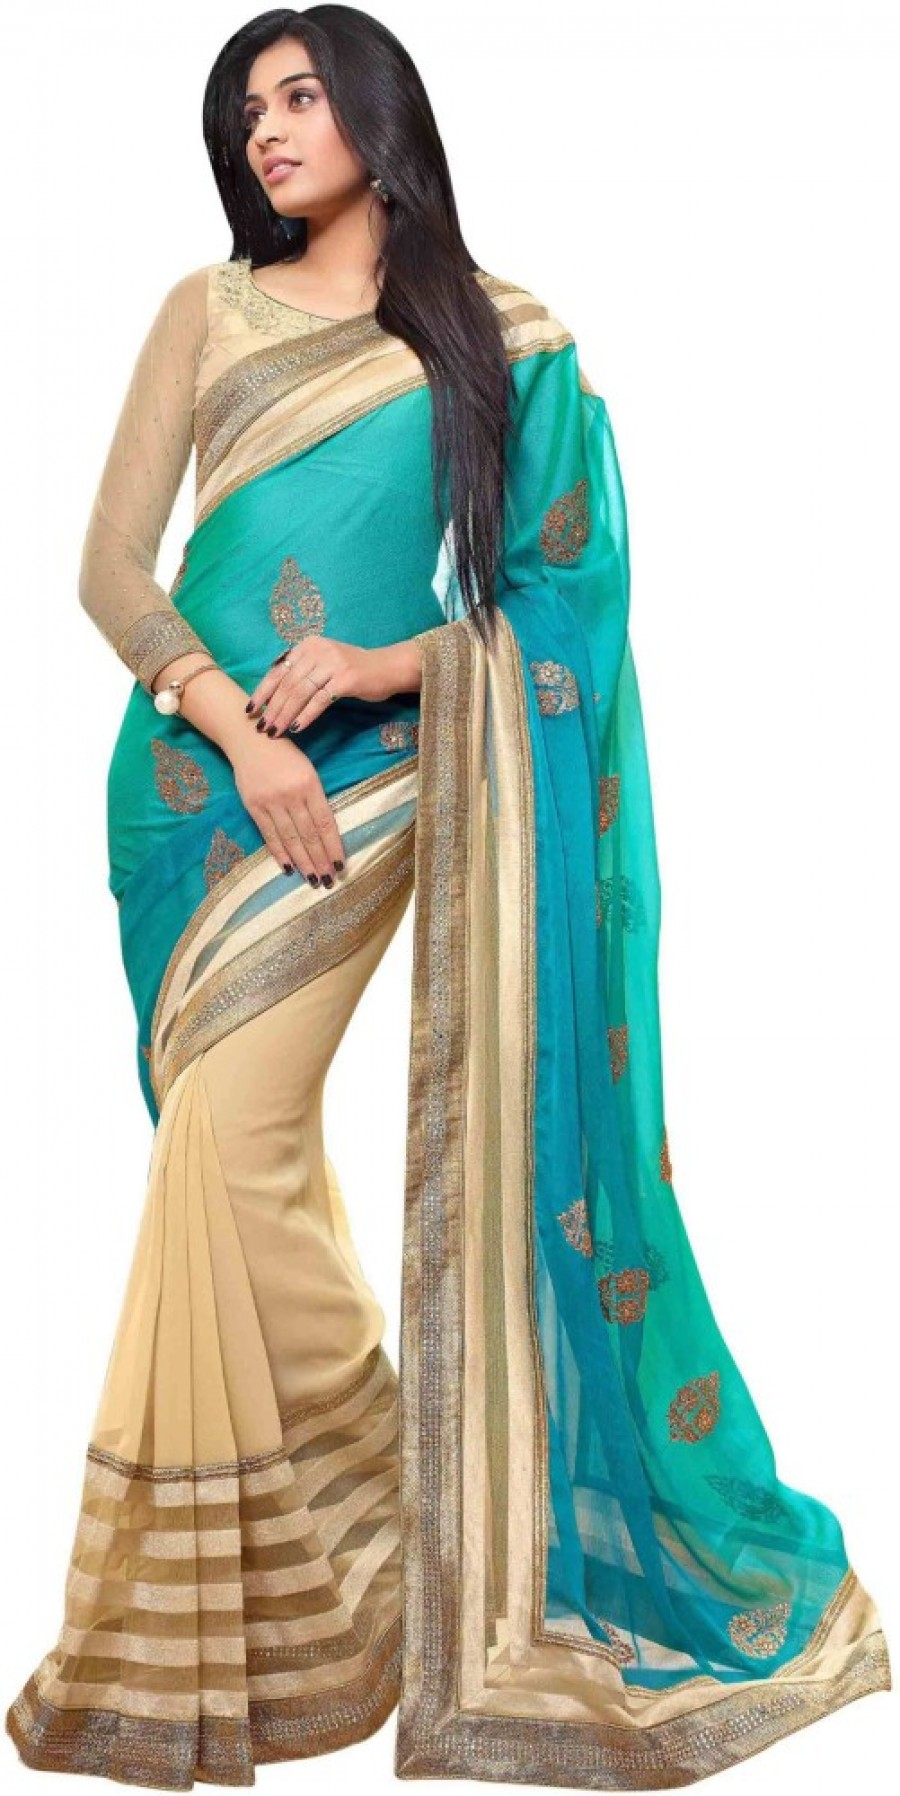 Buy Rajshri Fashions Embriodered Fashion Viscose Sari Online